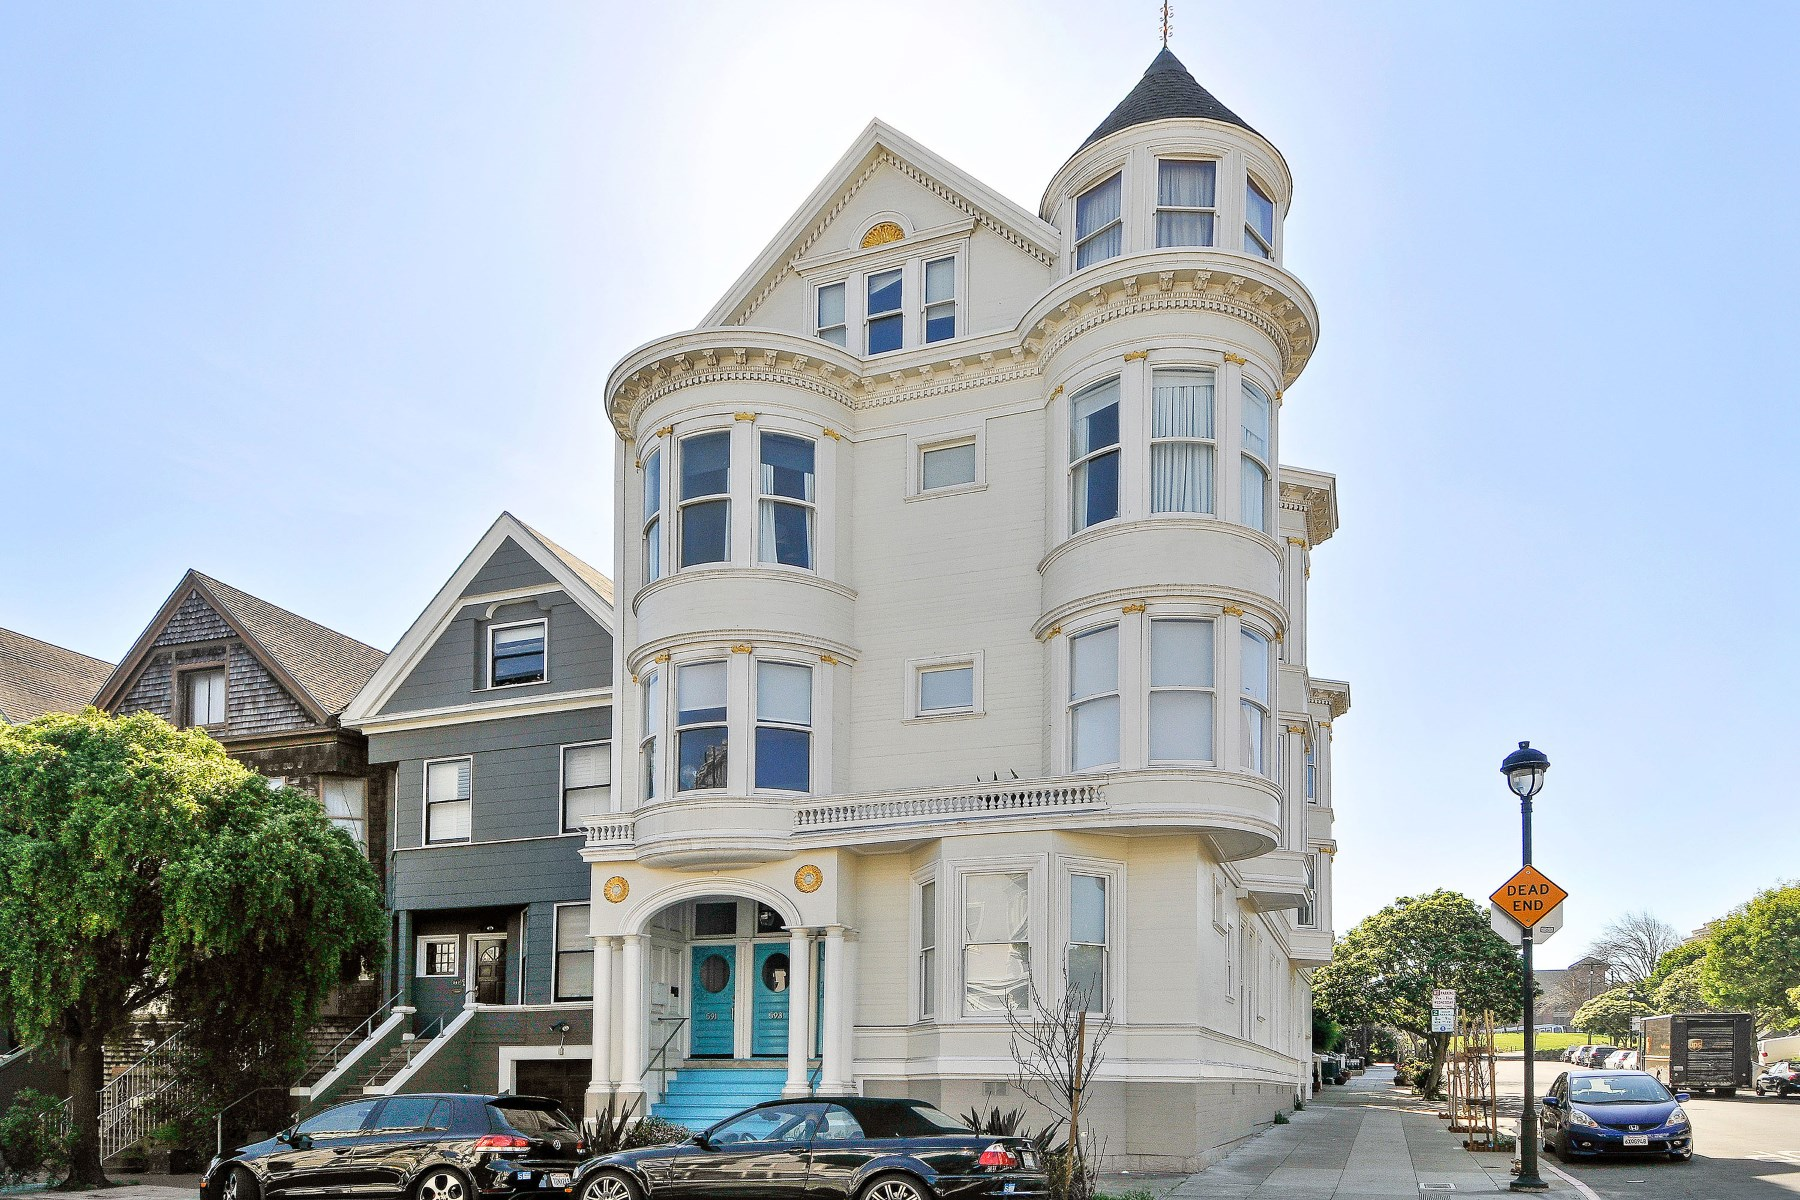 Квартира для того Продажа на Exquisite Duboce Park Flat 595 Waller St Hayes Valley, San Francisco, Калифорния 94117 Соединенные Штаты